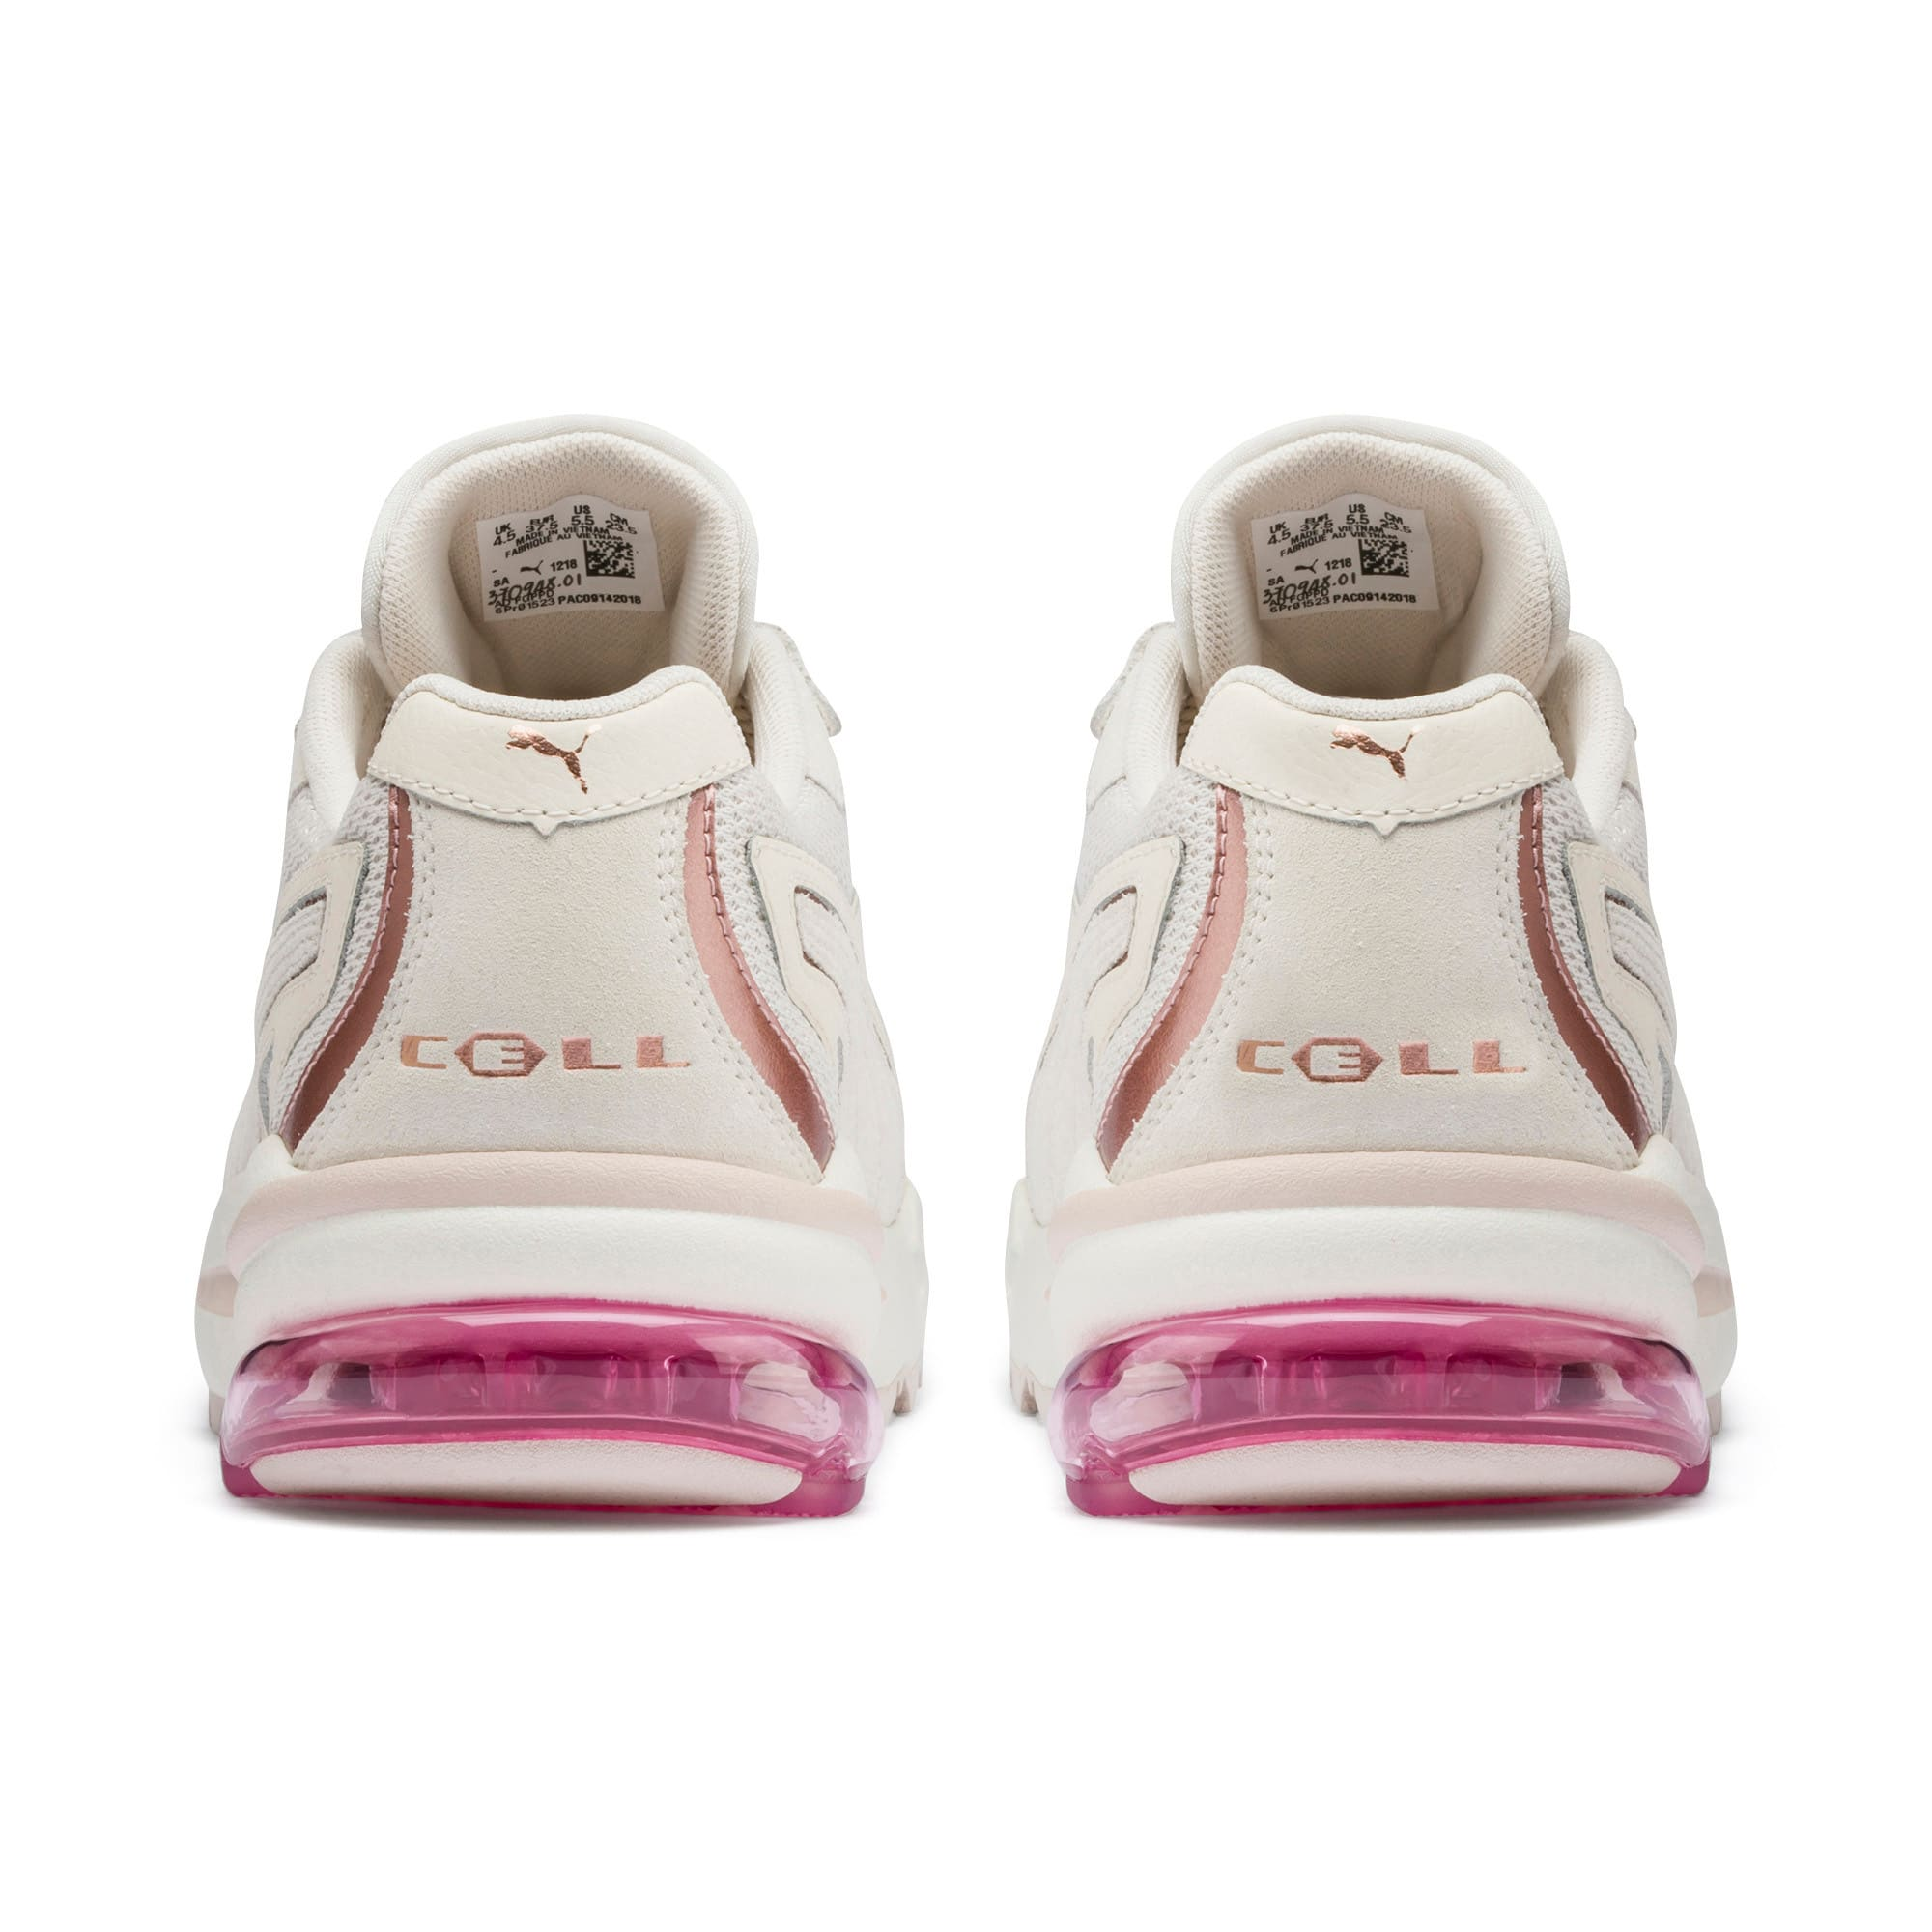 Thumbnail 3 of CELL Stellar Soft Women's Sneakers, Pastel Parchment-Rose Gold, medium